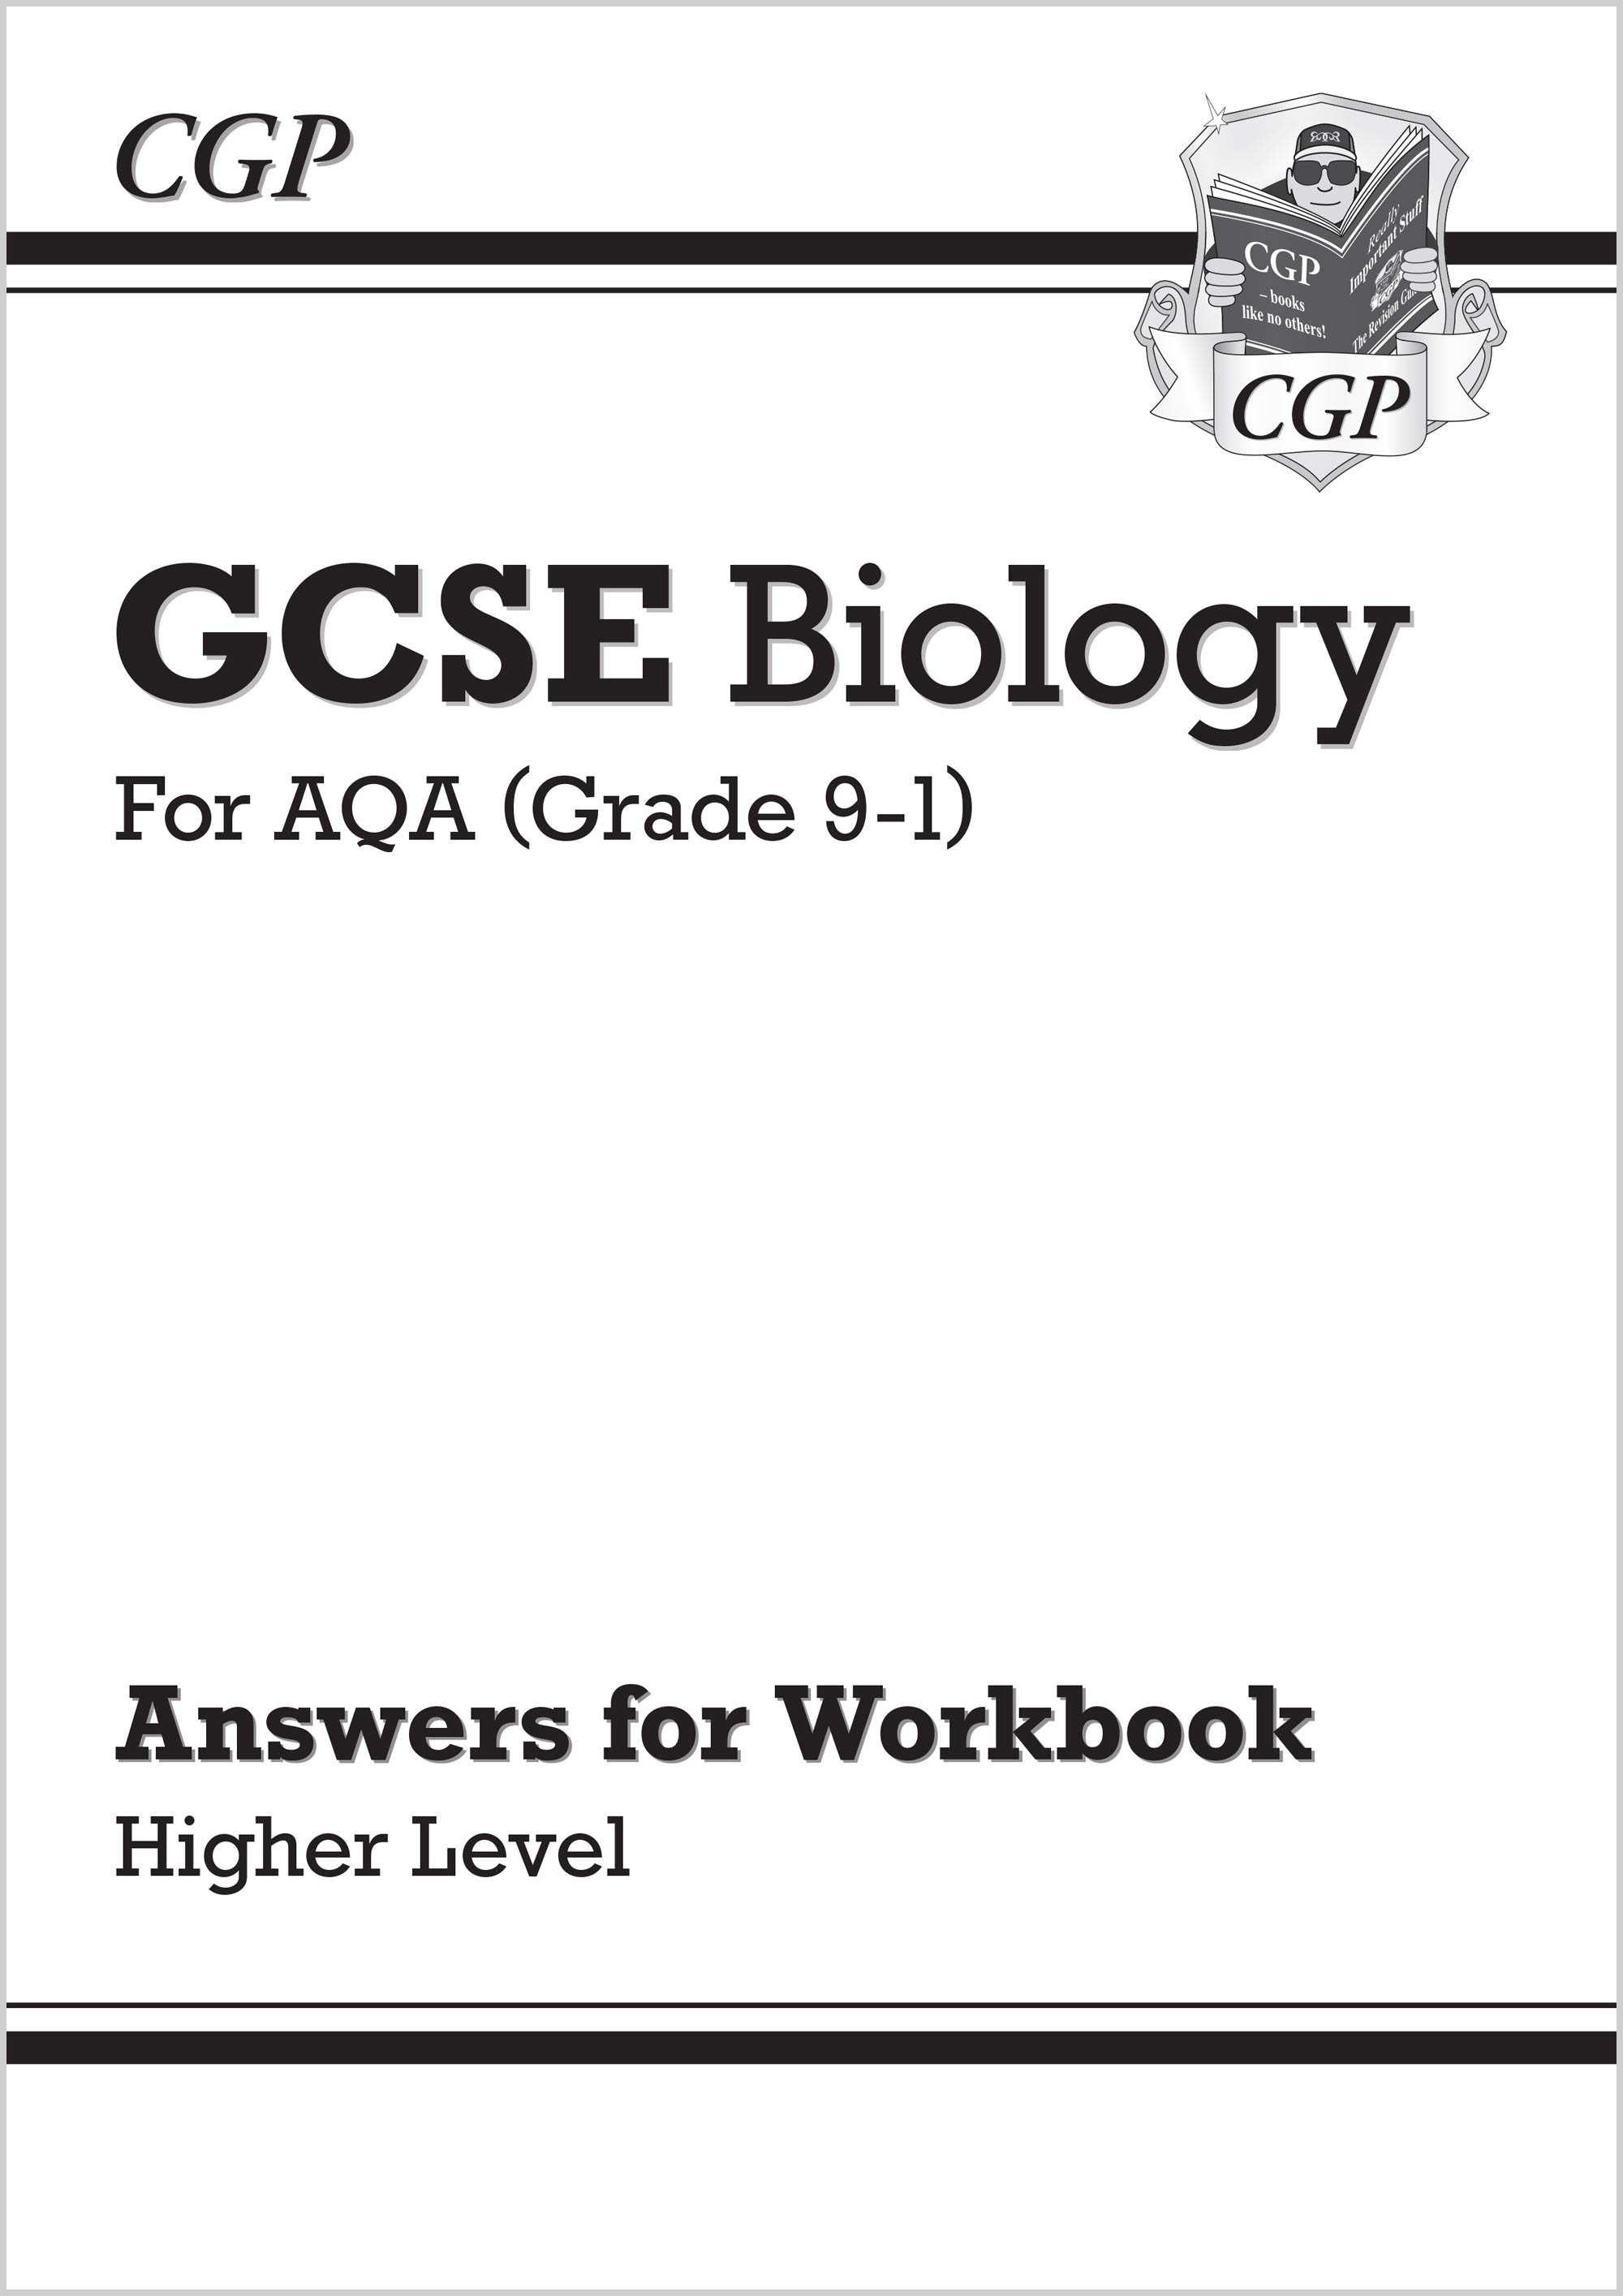 BAHA41 - Grade 9-1 GCSE Biology: AQA Answers (for Workbook) - Higher